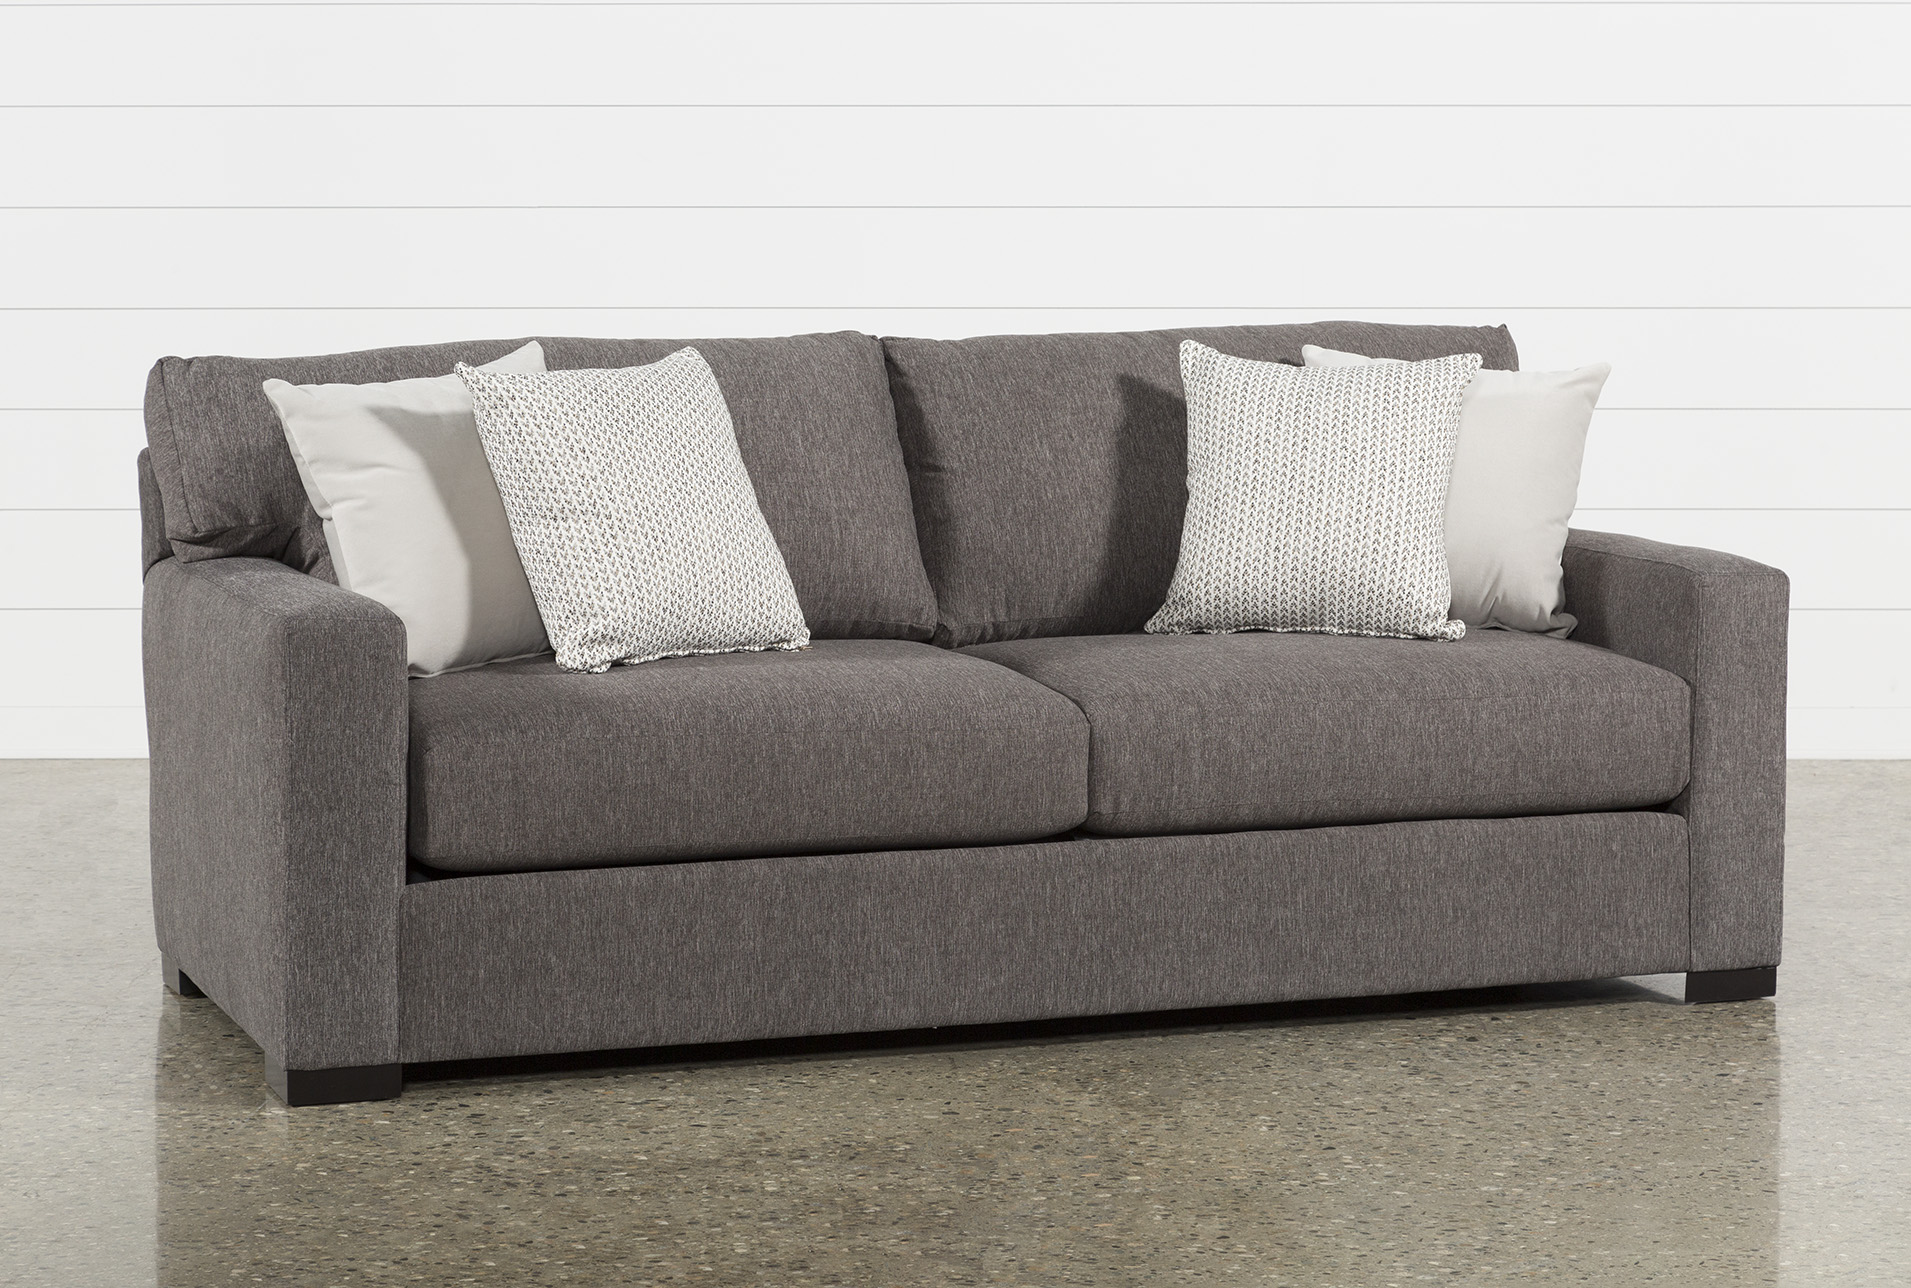 Mercer Foam Condo Sofa (Qty: 1) Has Been Successfully Added To Your Cart.